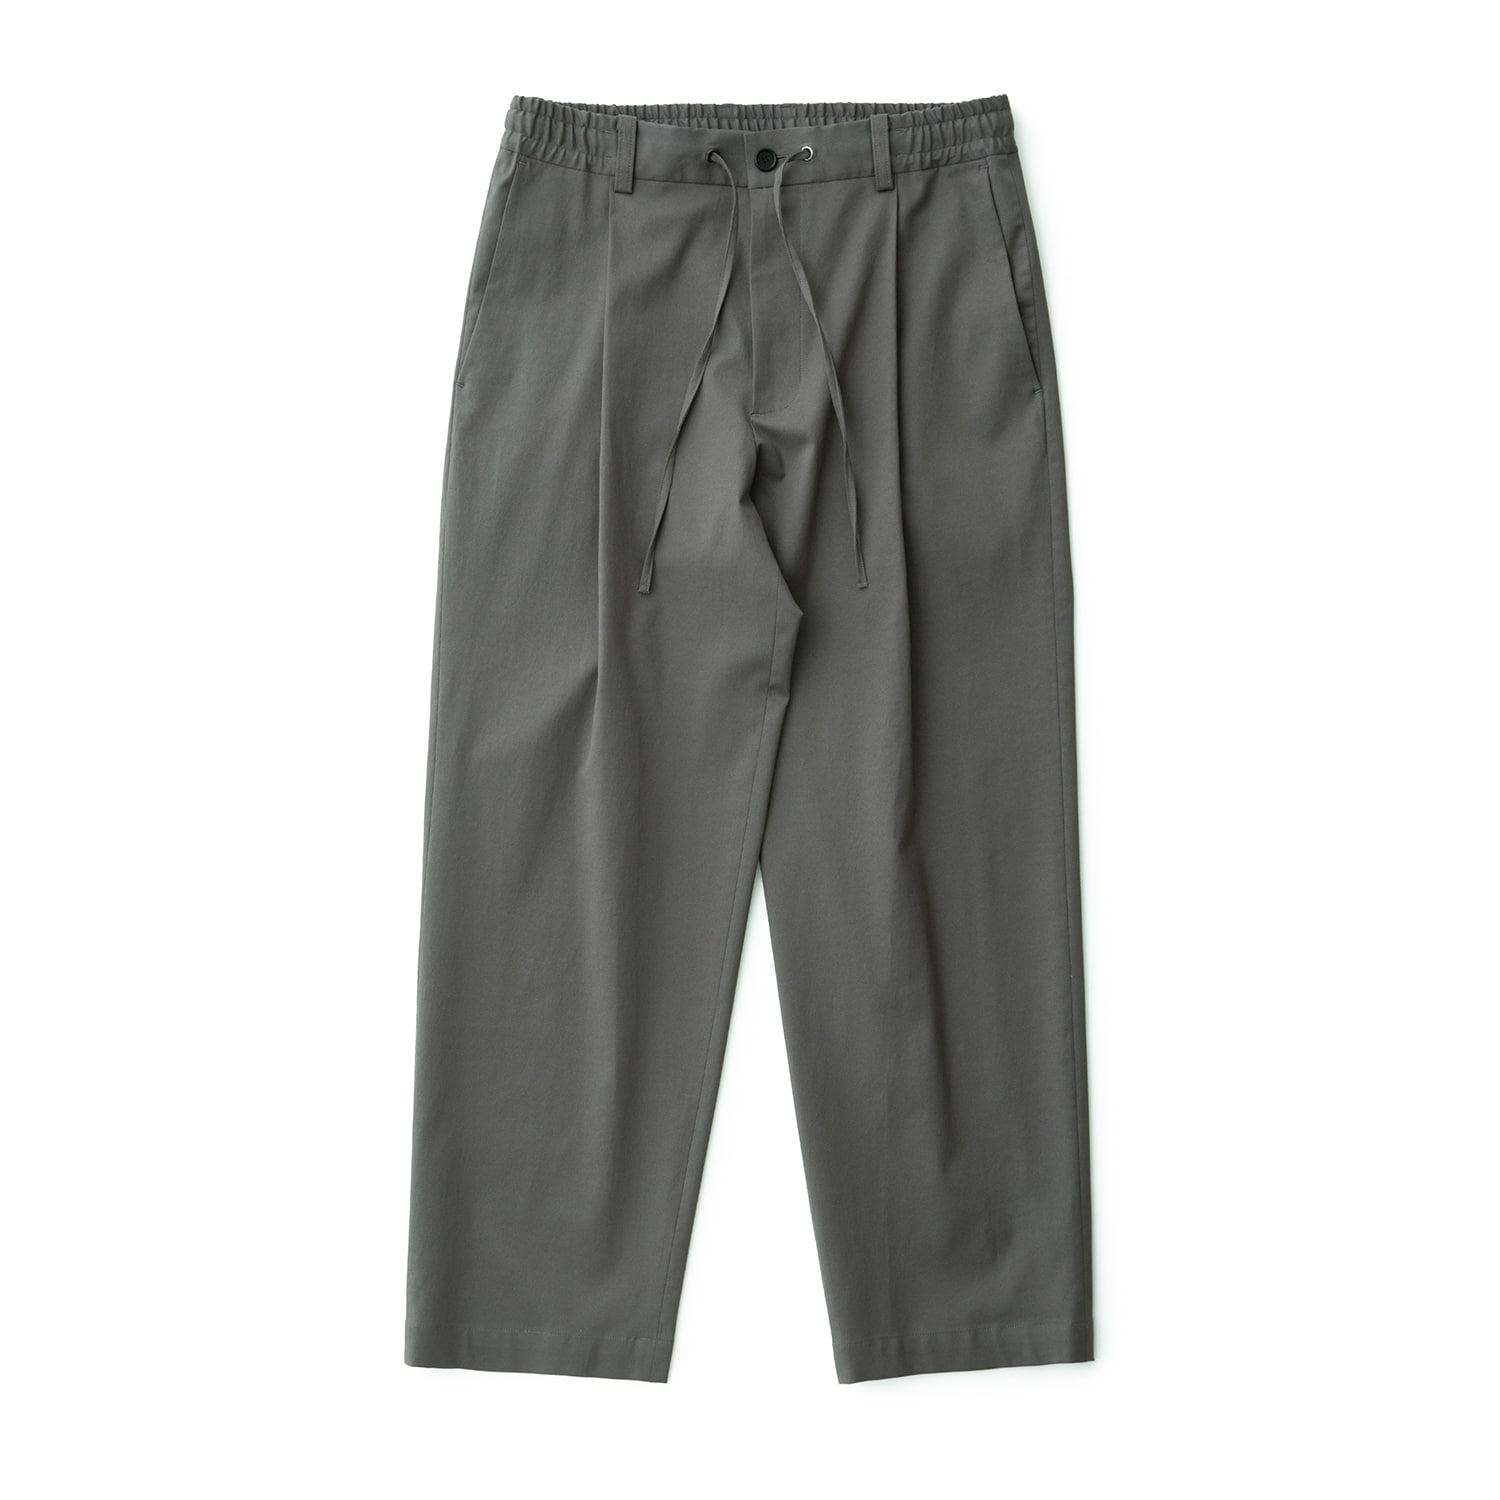 21SS Habana Pants (Elephant Gray)